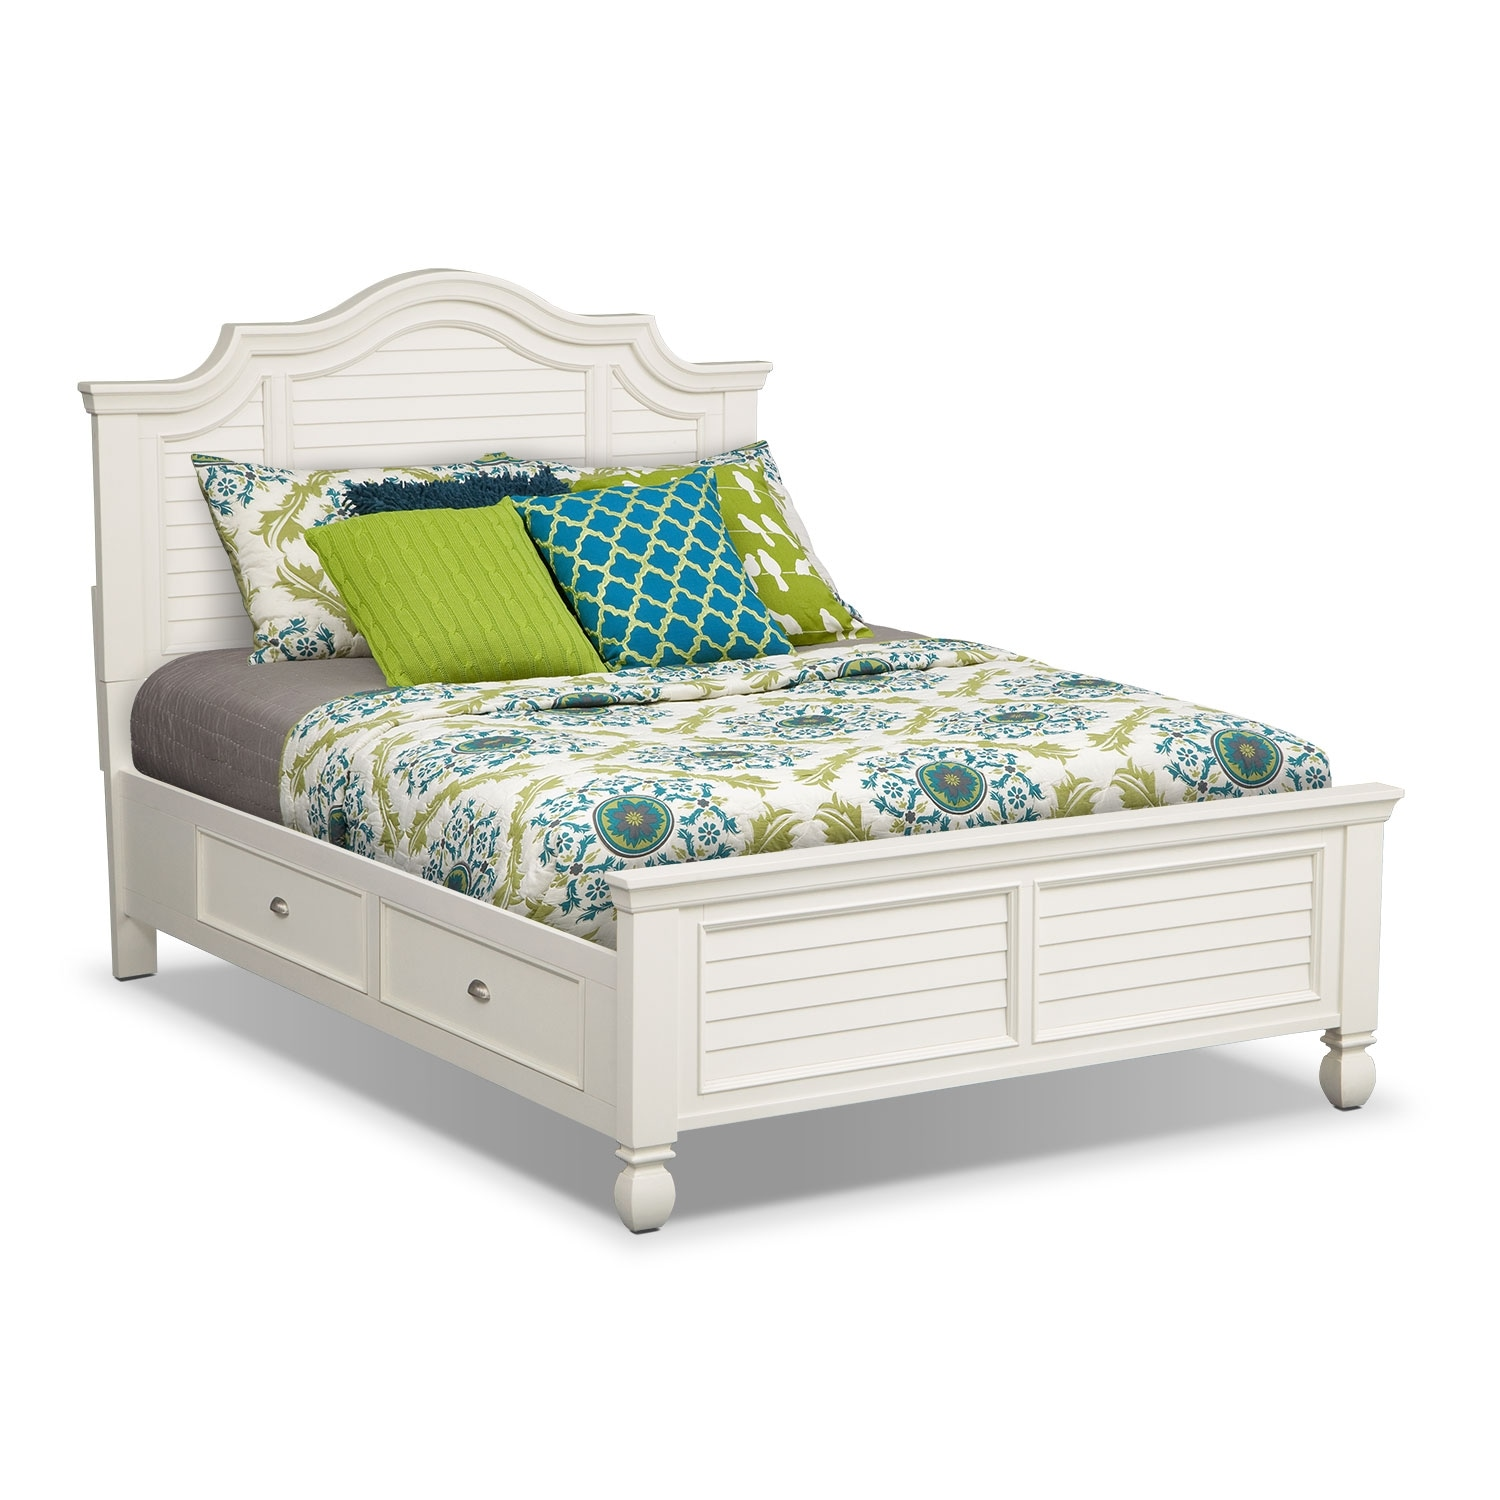 Plantation cove white storage queen storage bed value for White bedroom set with storage